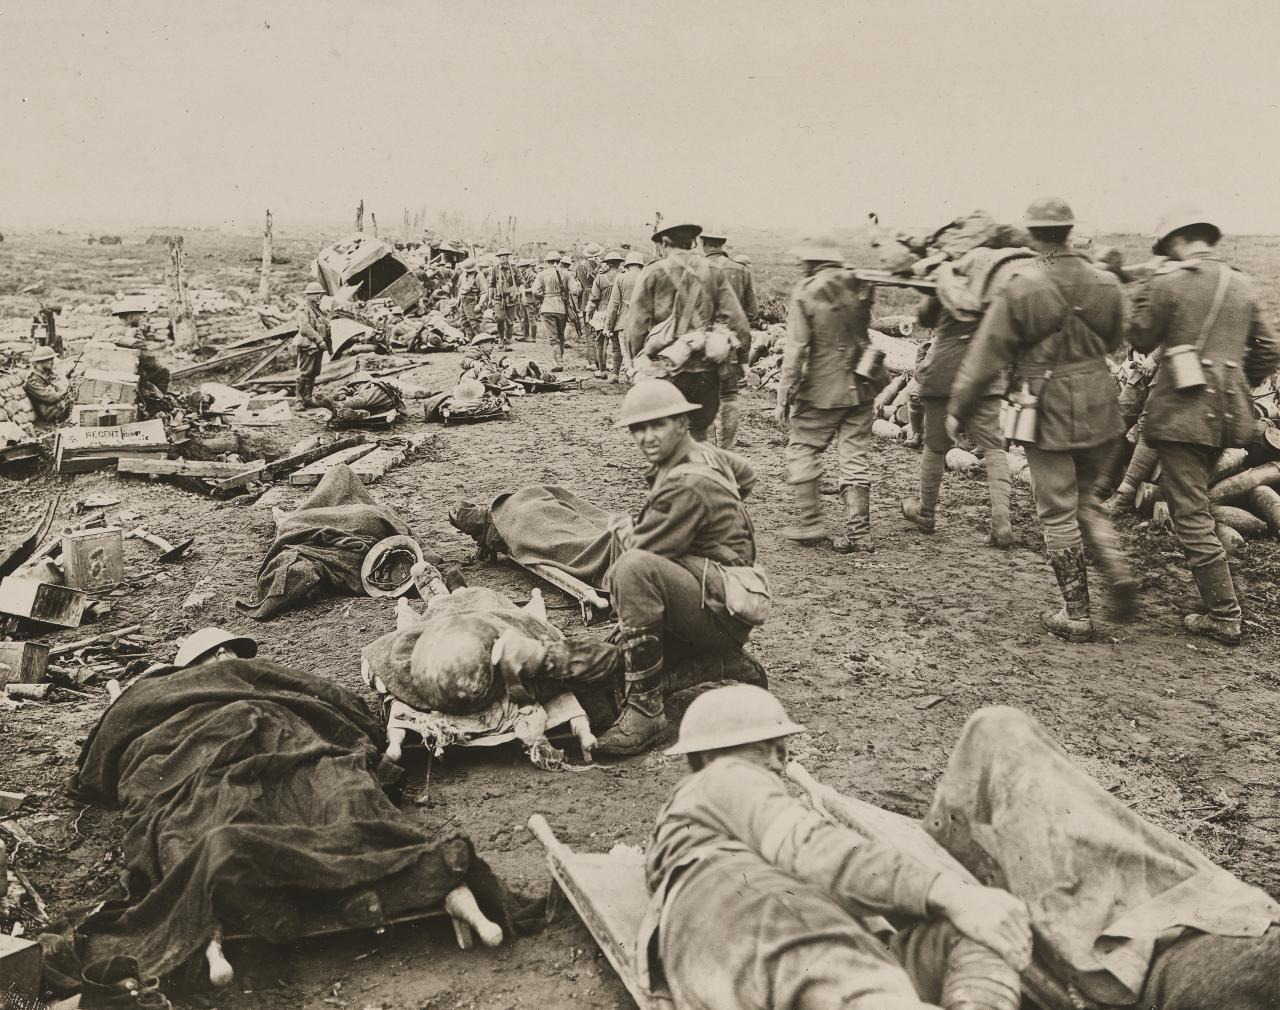 No title (Soldiers laying on stretchers)